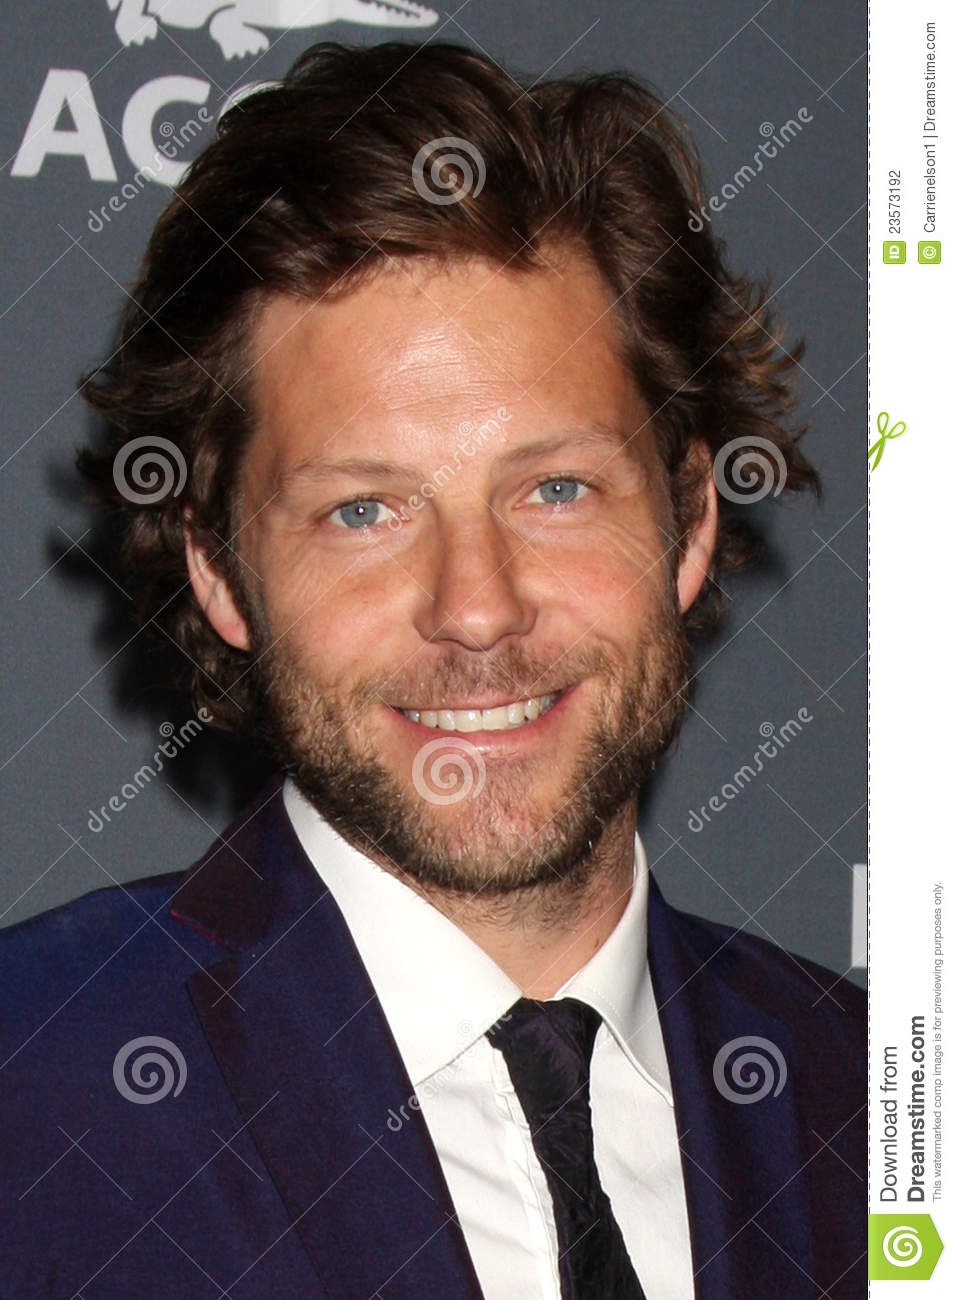 jamie bamber 2015jamie bamber twitter, jamie bamber wife, jamie bamber 2016, jamie bamber instagram, jamie bamber money, jamie bamber facebook, jamie bamber ncis, jamie bamber, jamie bamber band of brothers, jamie bamber interview, jamie bamber wiki, jamie bamber news, jamie bamber 2015, jamie bamber major crimes, jamie bamber wikipedia, jamie bamber photos, jamie bamber house, jamie bamber actor, jamie bamber leaving law and order, jamie bamber shirtless